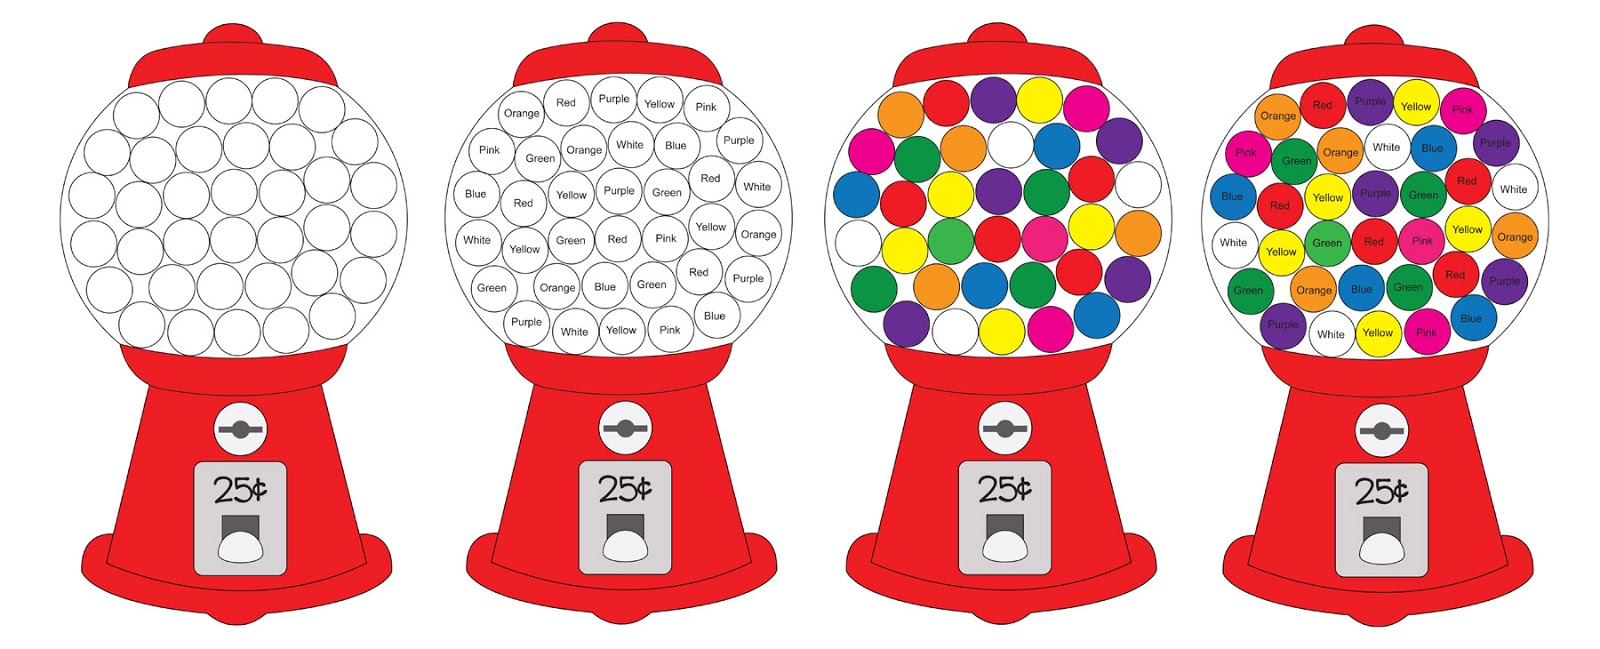 Impertinent image intended for printable gumball machine